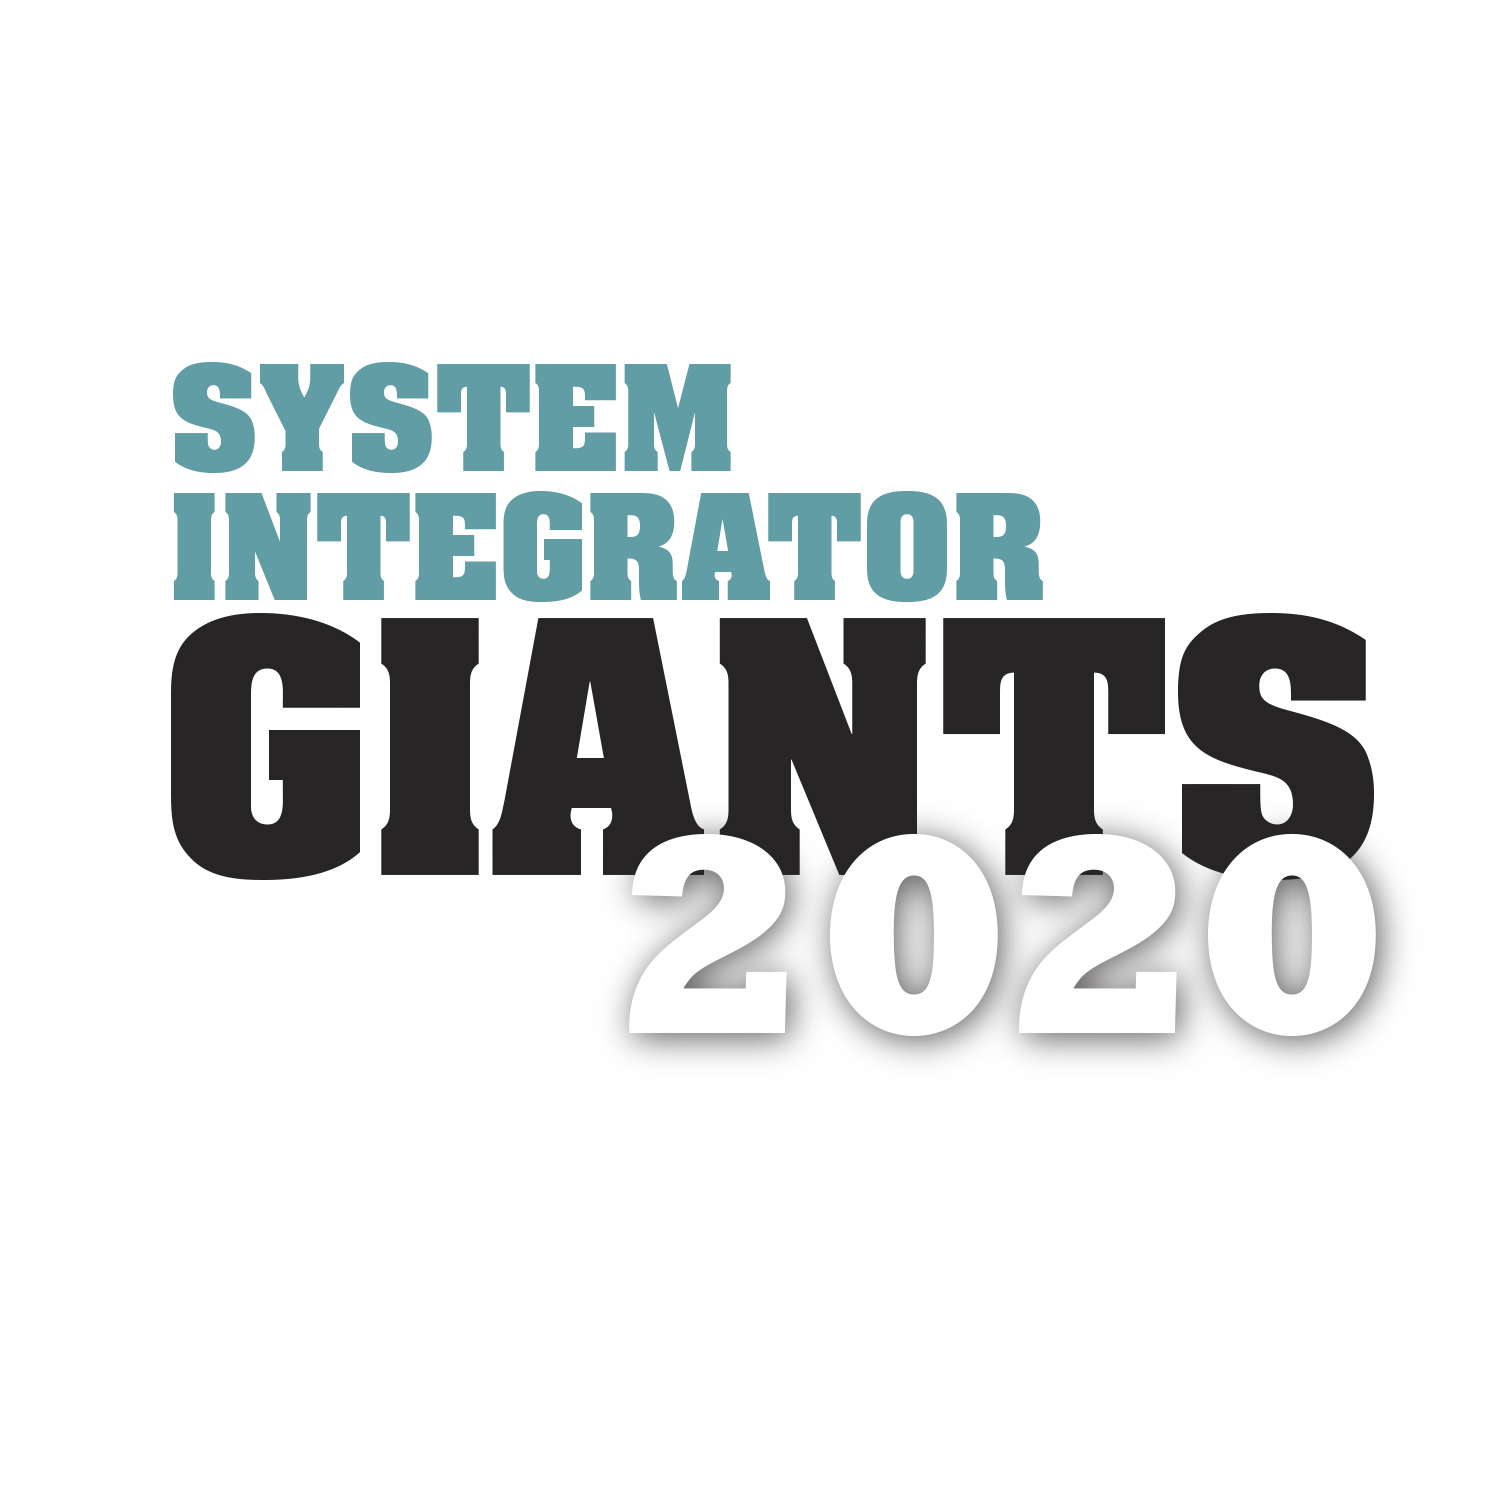 E-volve Systems named a 2020 System Integrator Giant by Control Engineering and Plant Engineering!